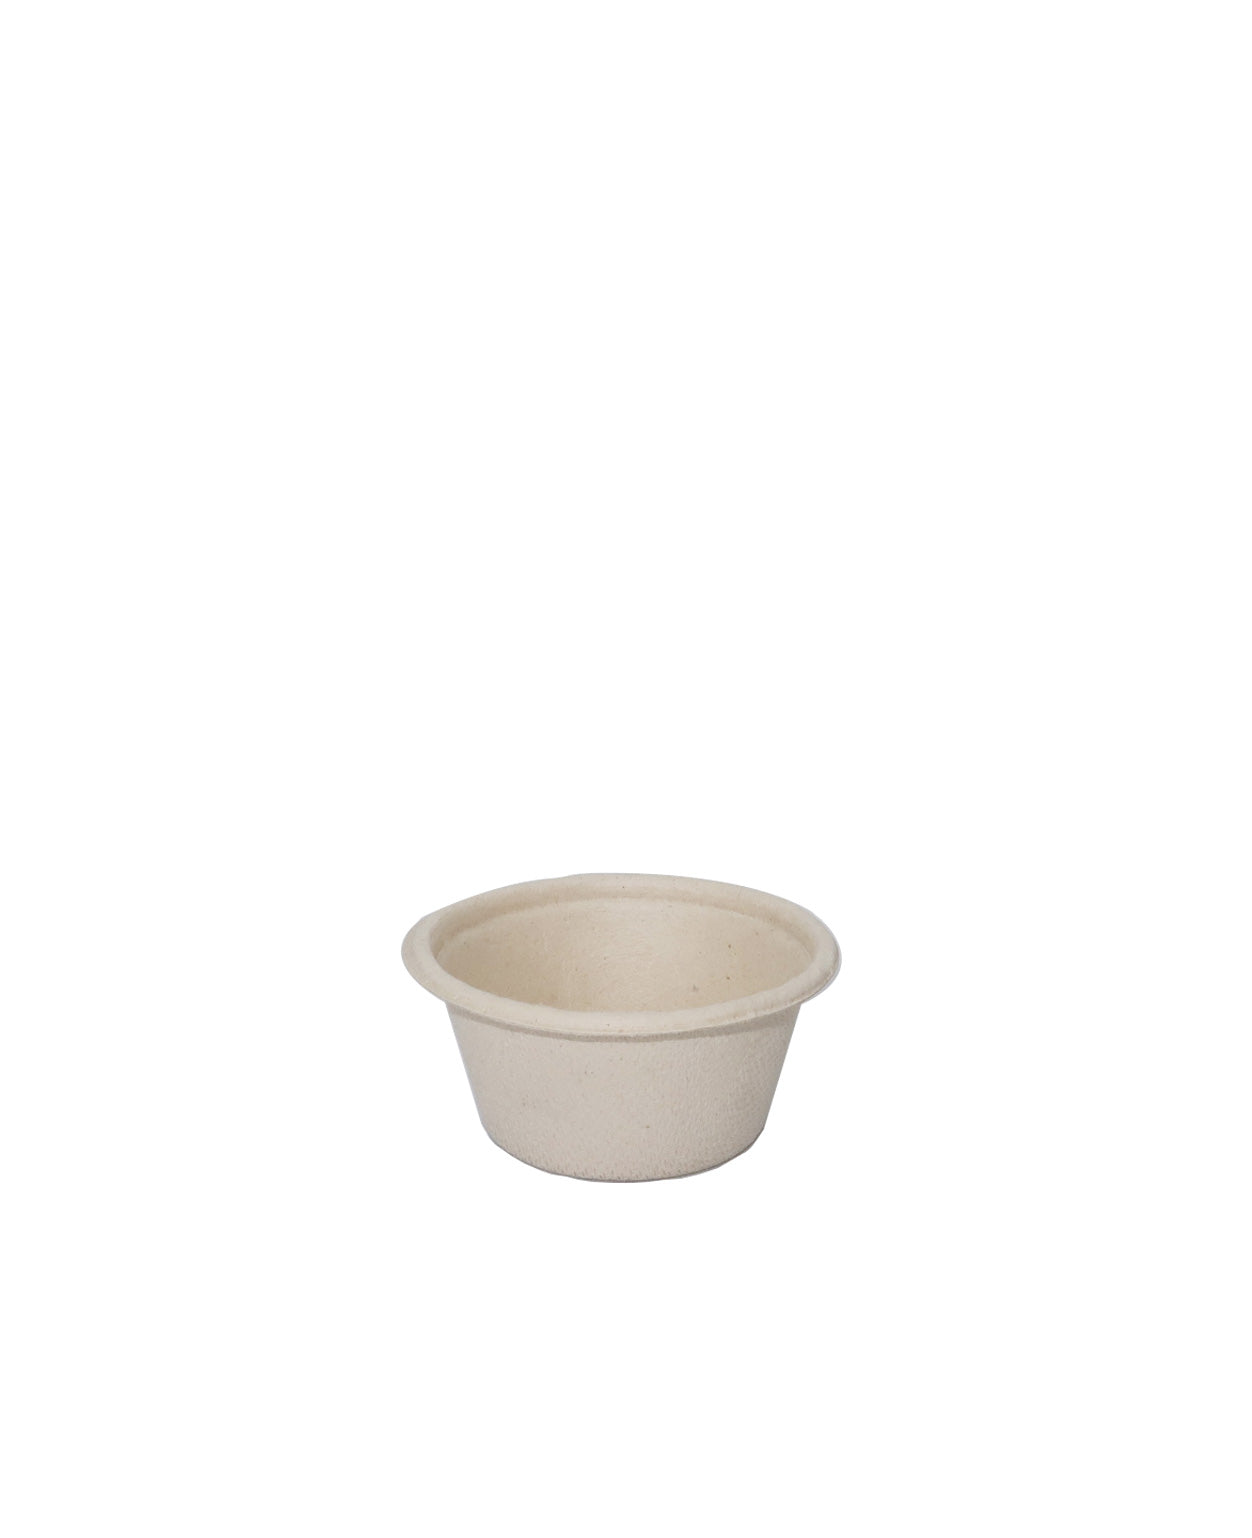 2oz Sugarcane Sauce Cup (63mm) - Nature Pac